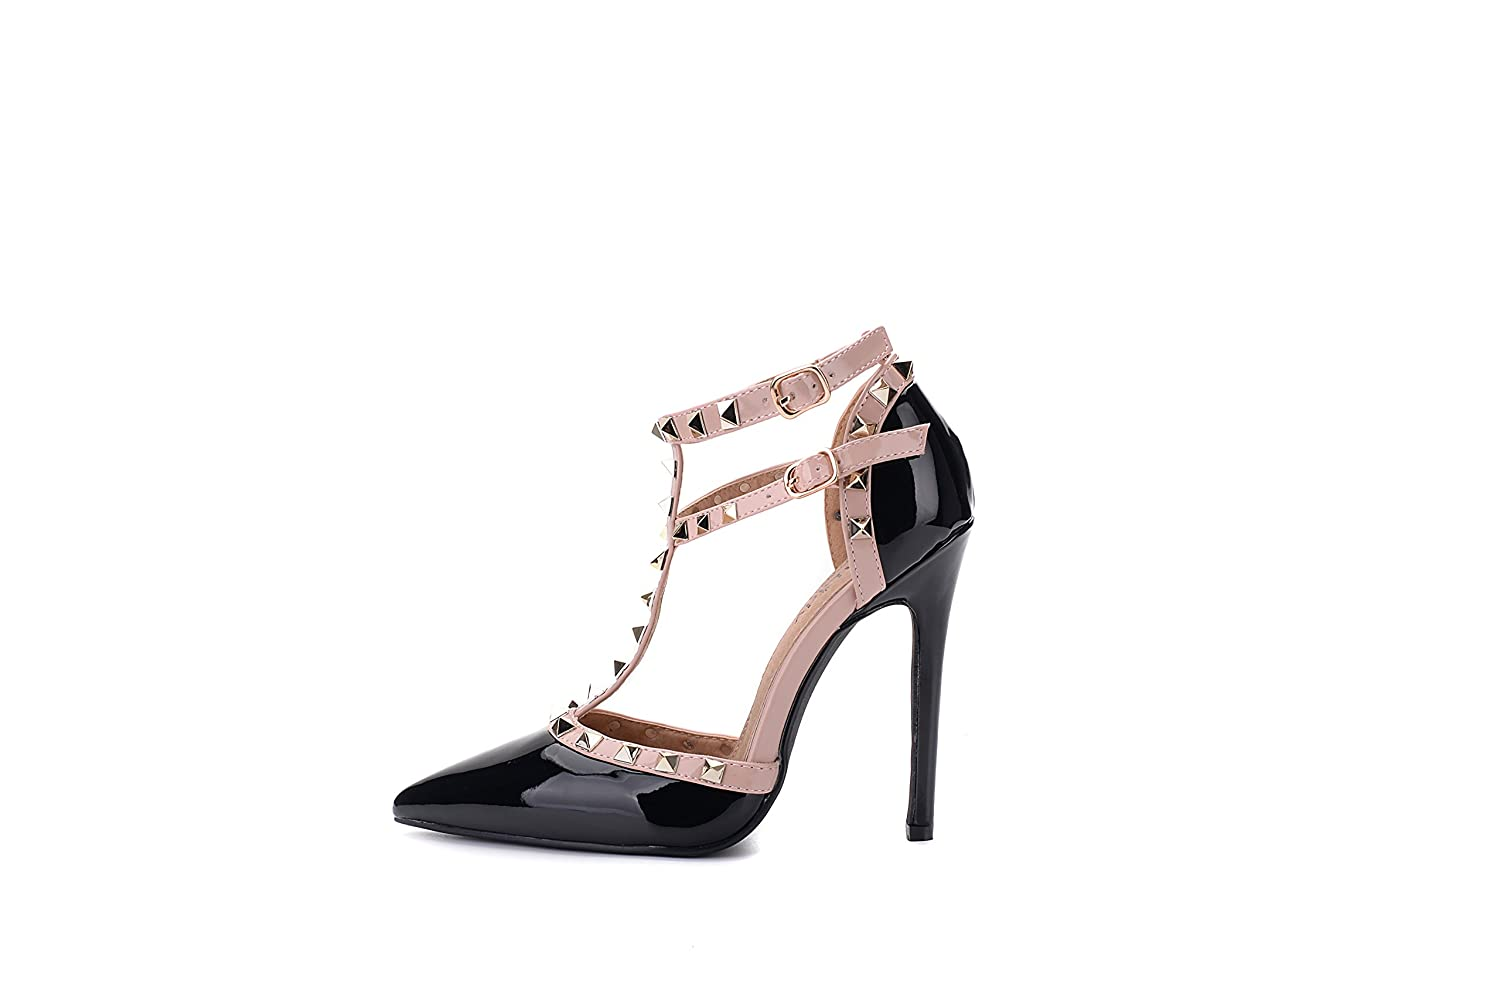 Mila Lady ETHER08 Two -Tone Patent Strappy Strappy Patent Ankle with Stud Elegance Platform Lady Heeled Pumps Shoes B072KM4BFC 8|Black b06edf